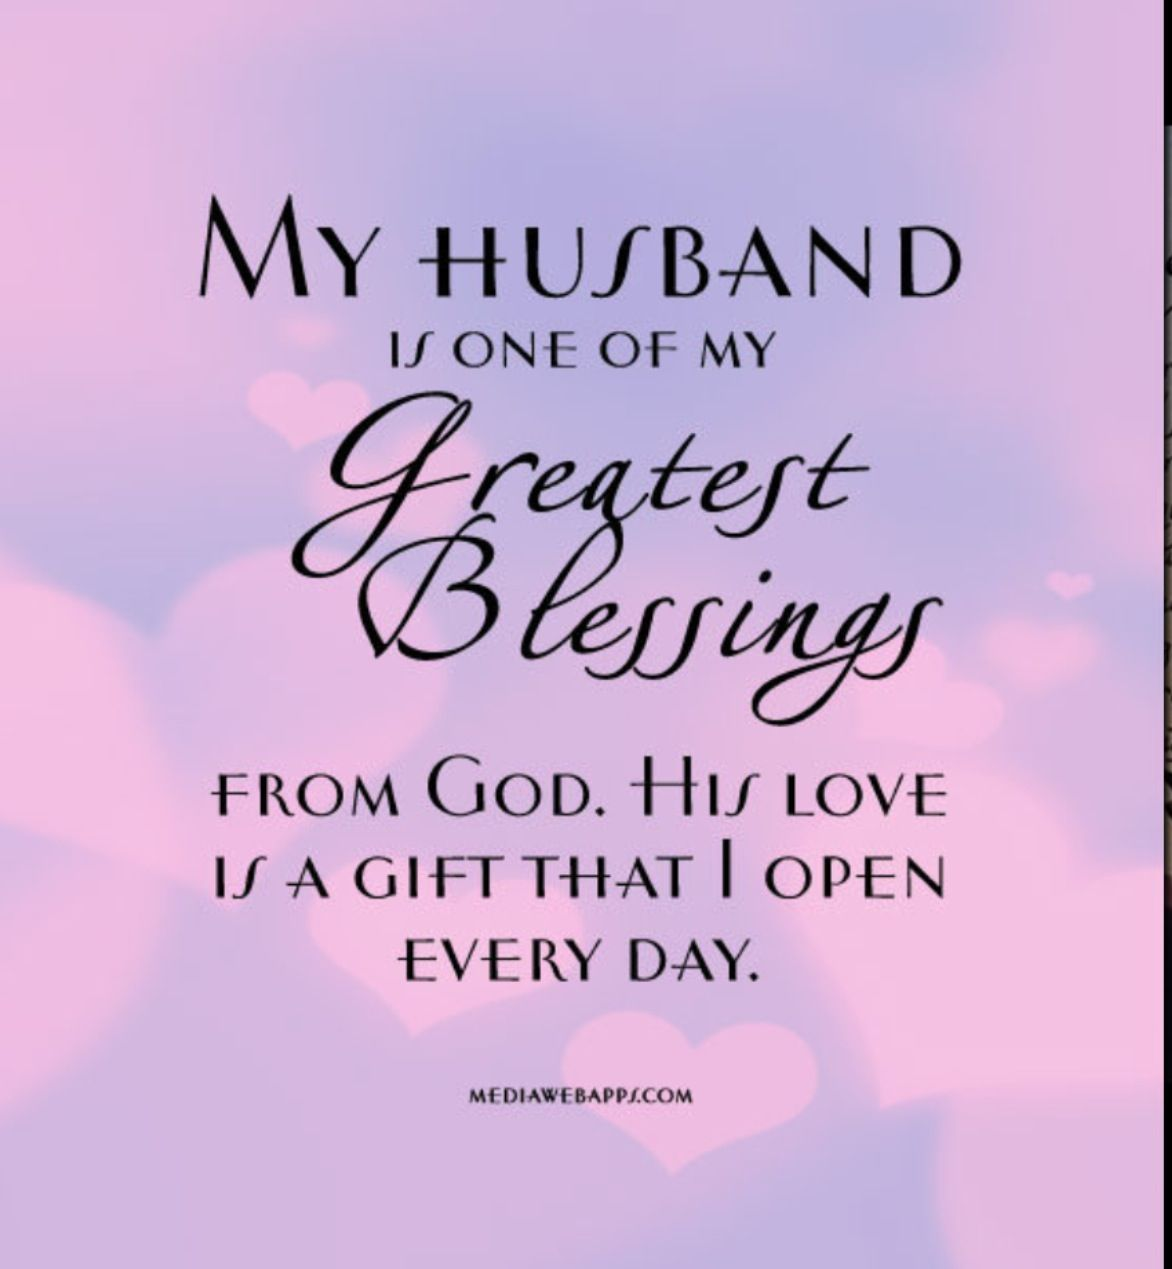 Quotes About Husbands And Love Husbandmy Greatest Blessing  Inspirational Pictures And Quotes